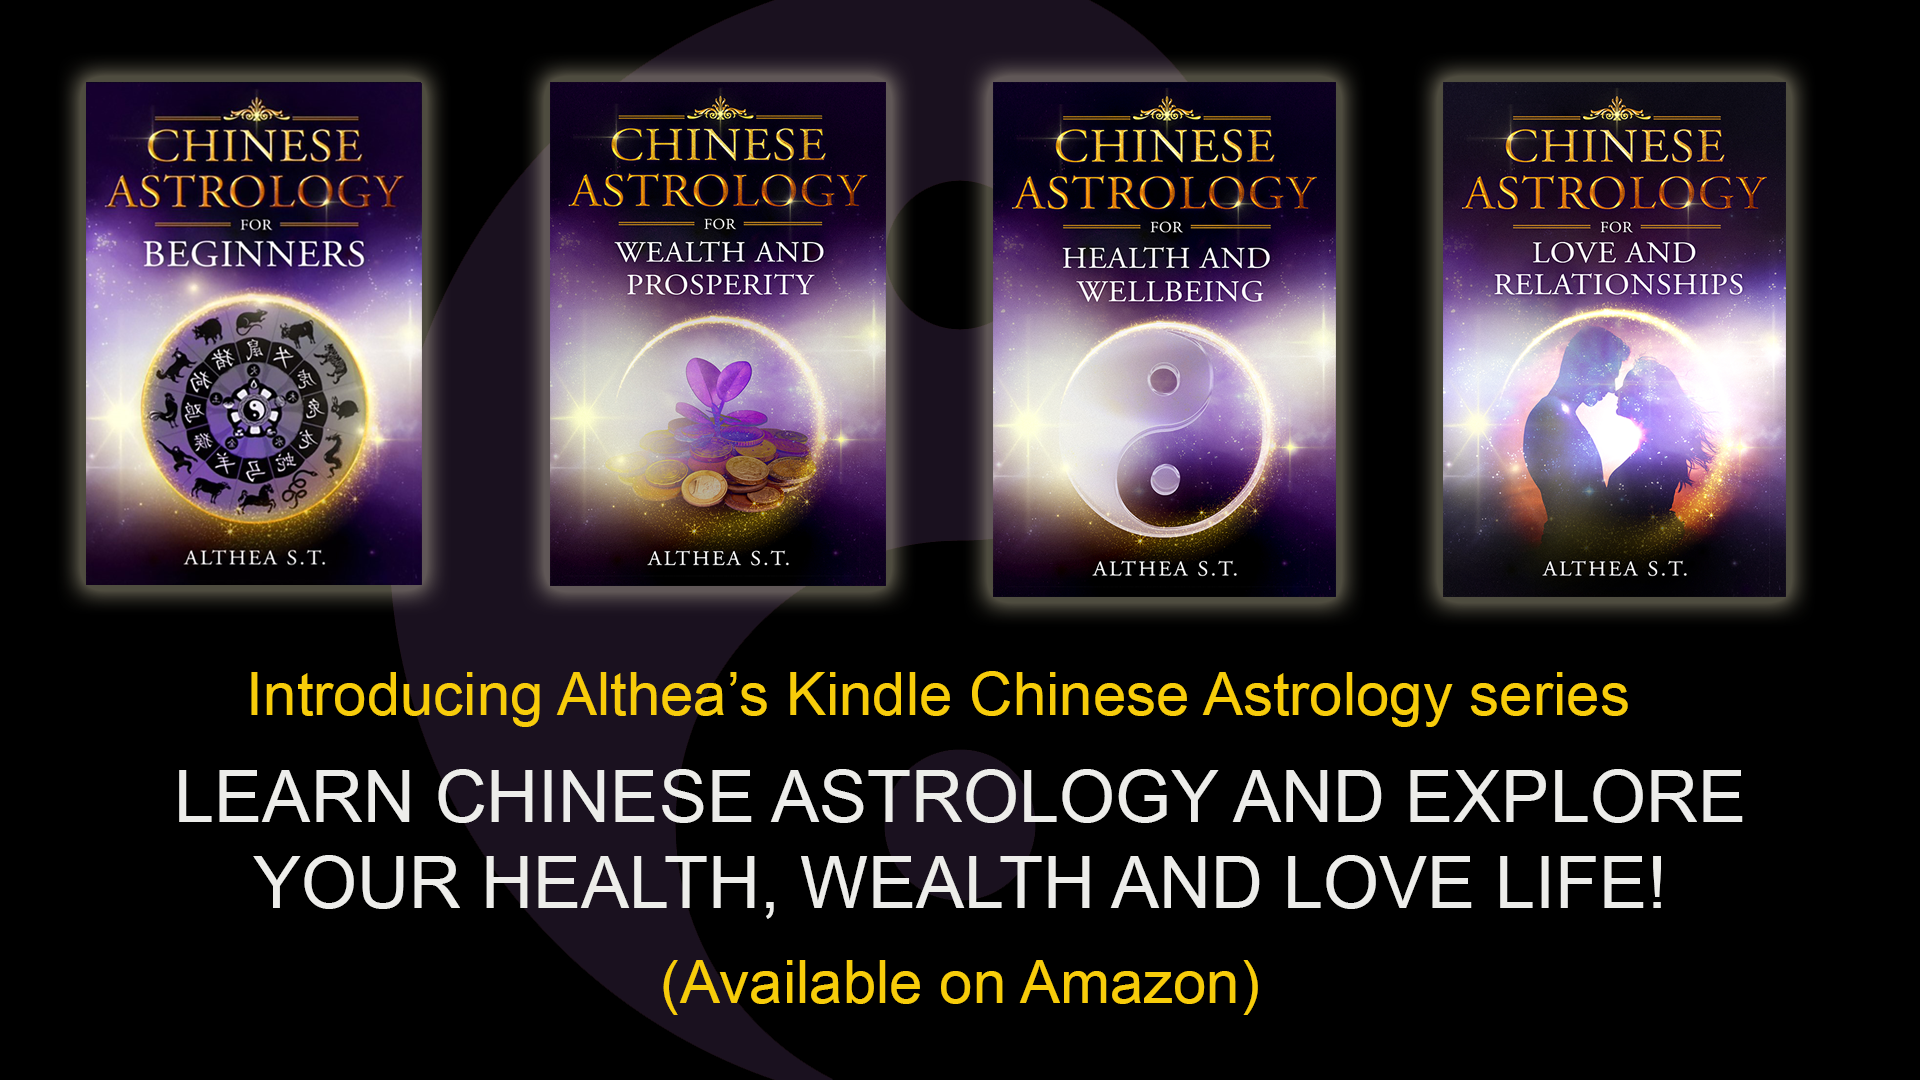 Chinese astrology books